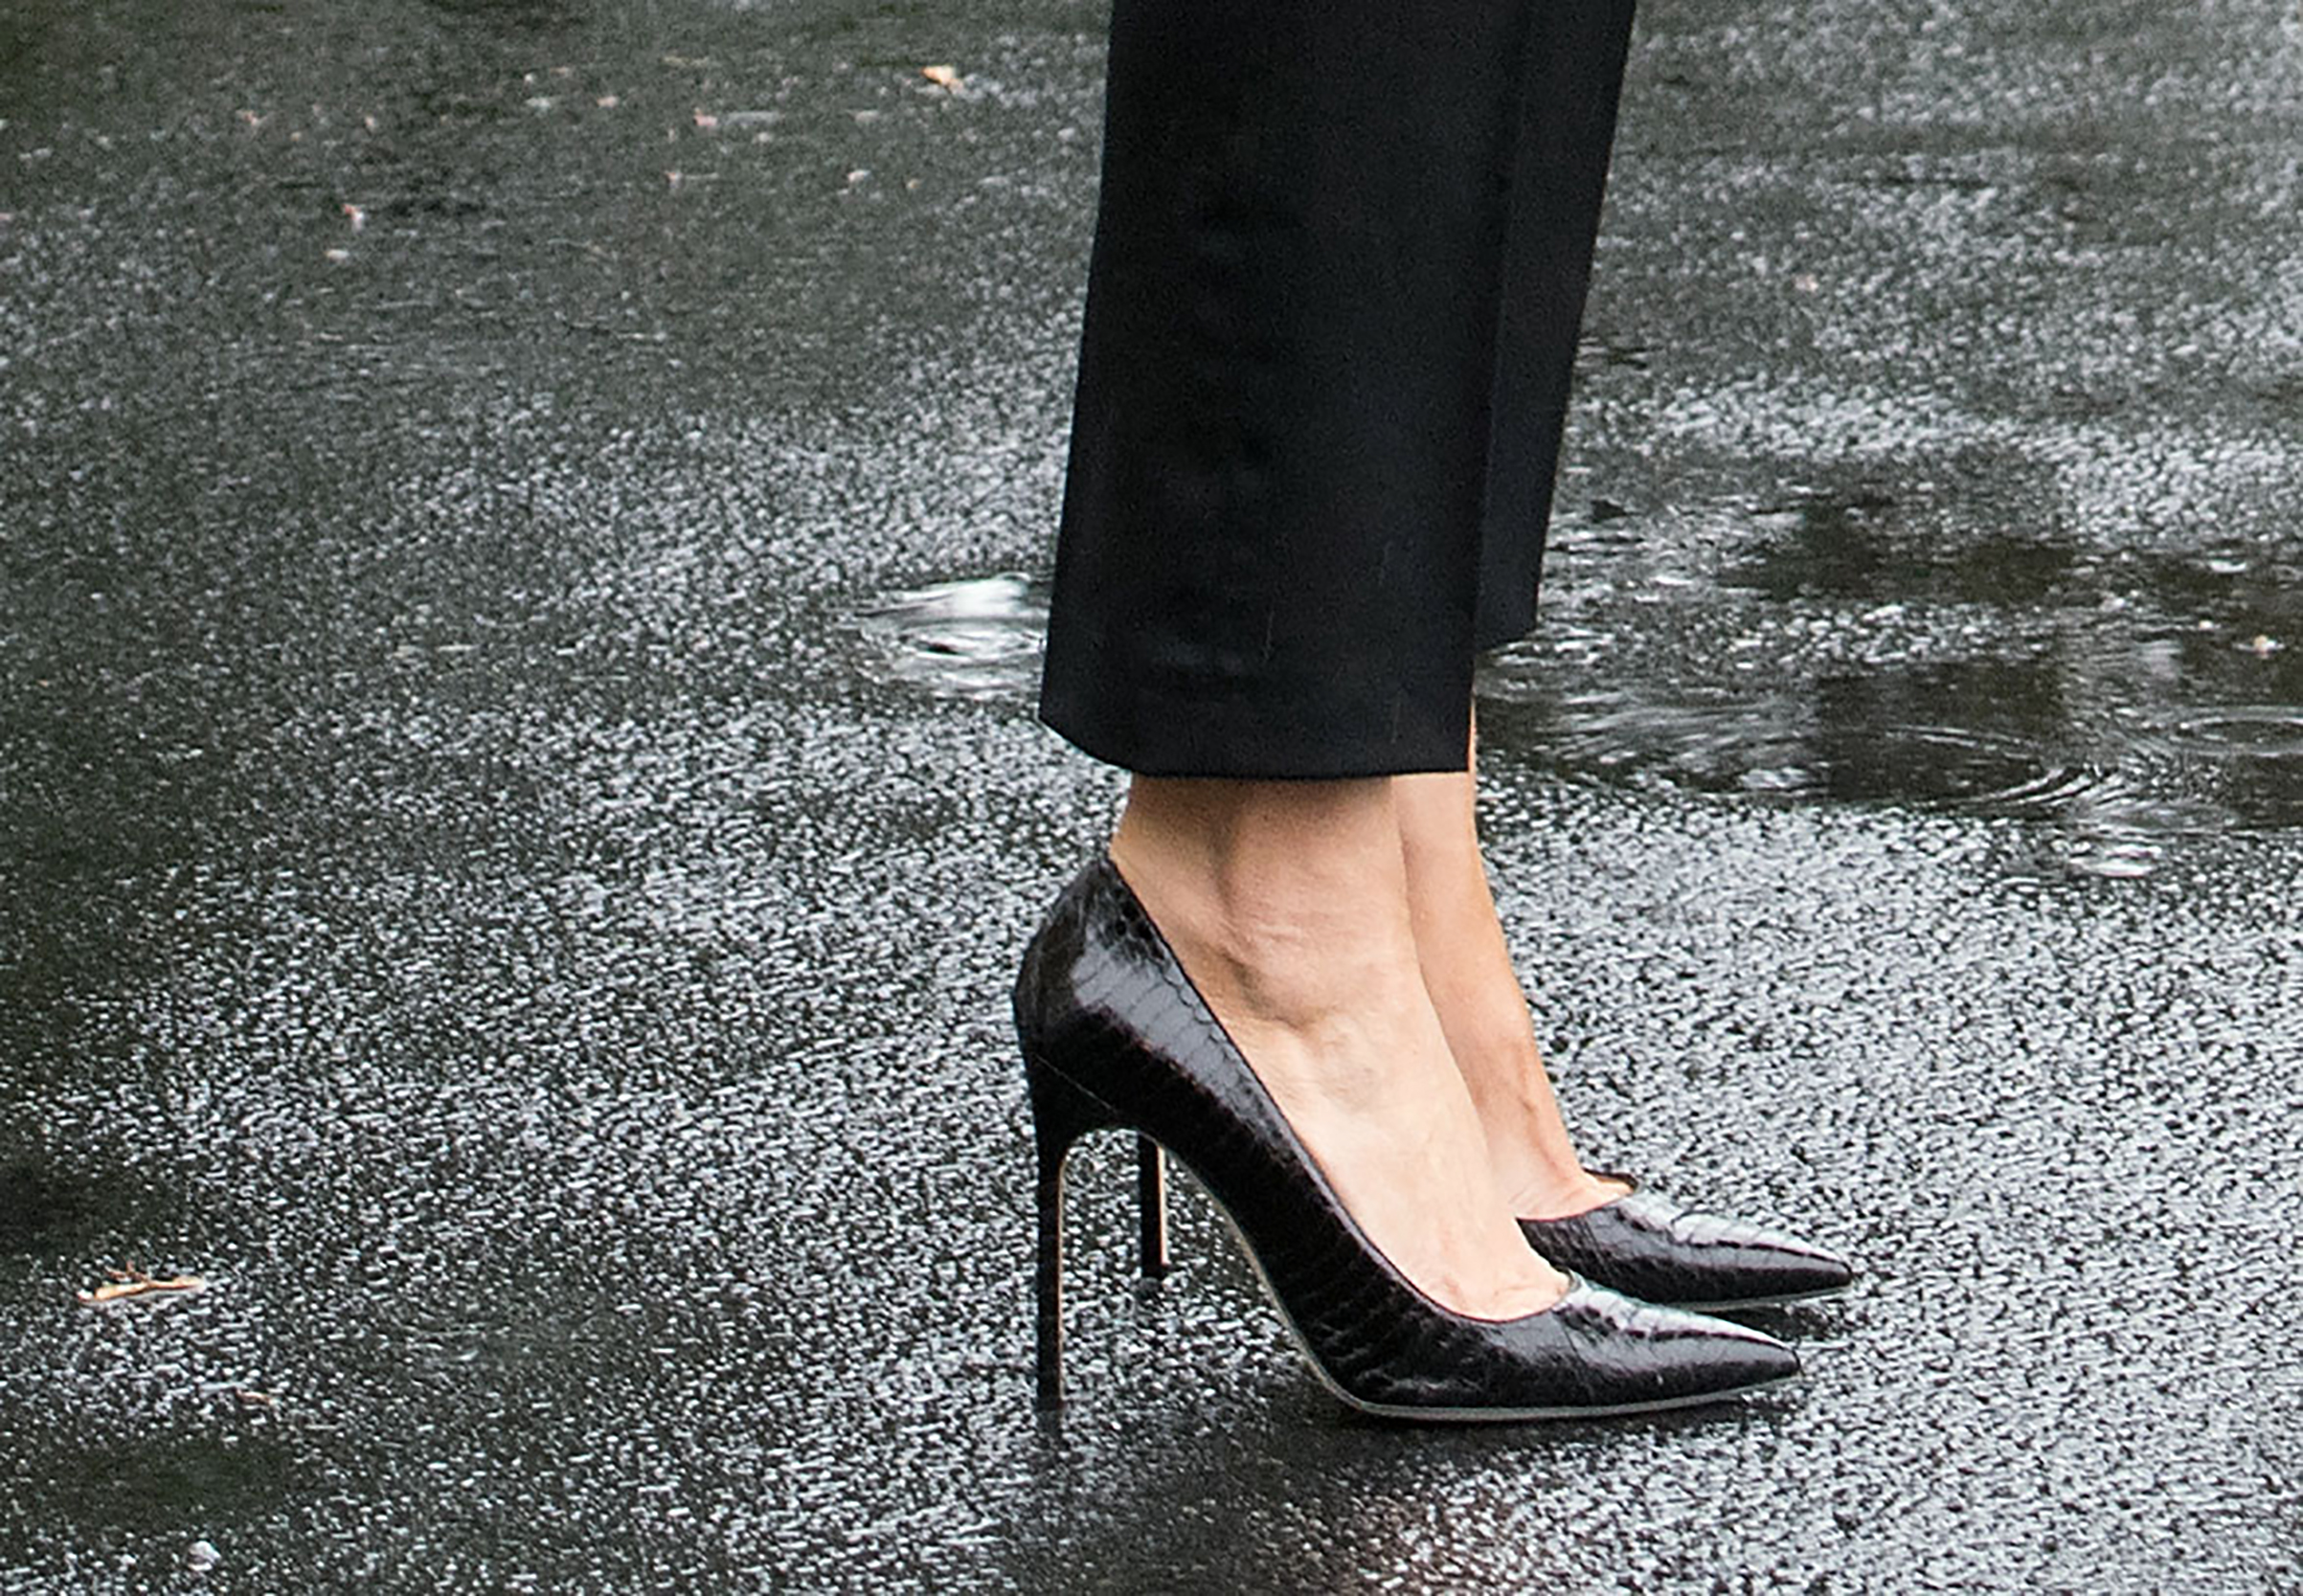 First lady Melania Trump wearing black Manolo Blahnik stilettos before leaving for Texas to observe the Hurricane Harvey relief efforts, Aug. 29, 2017.